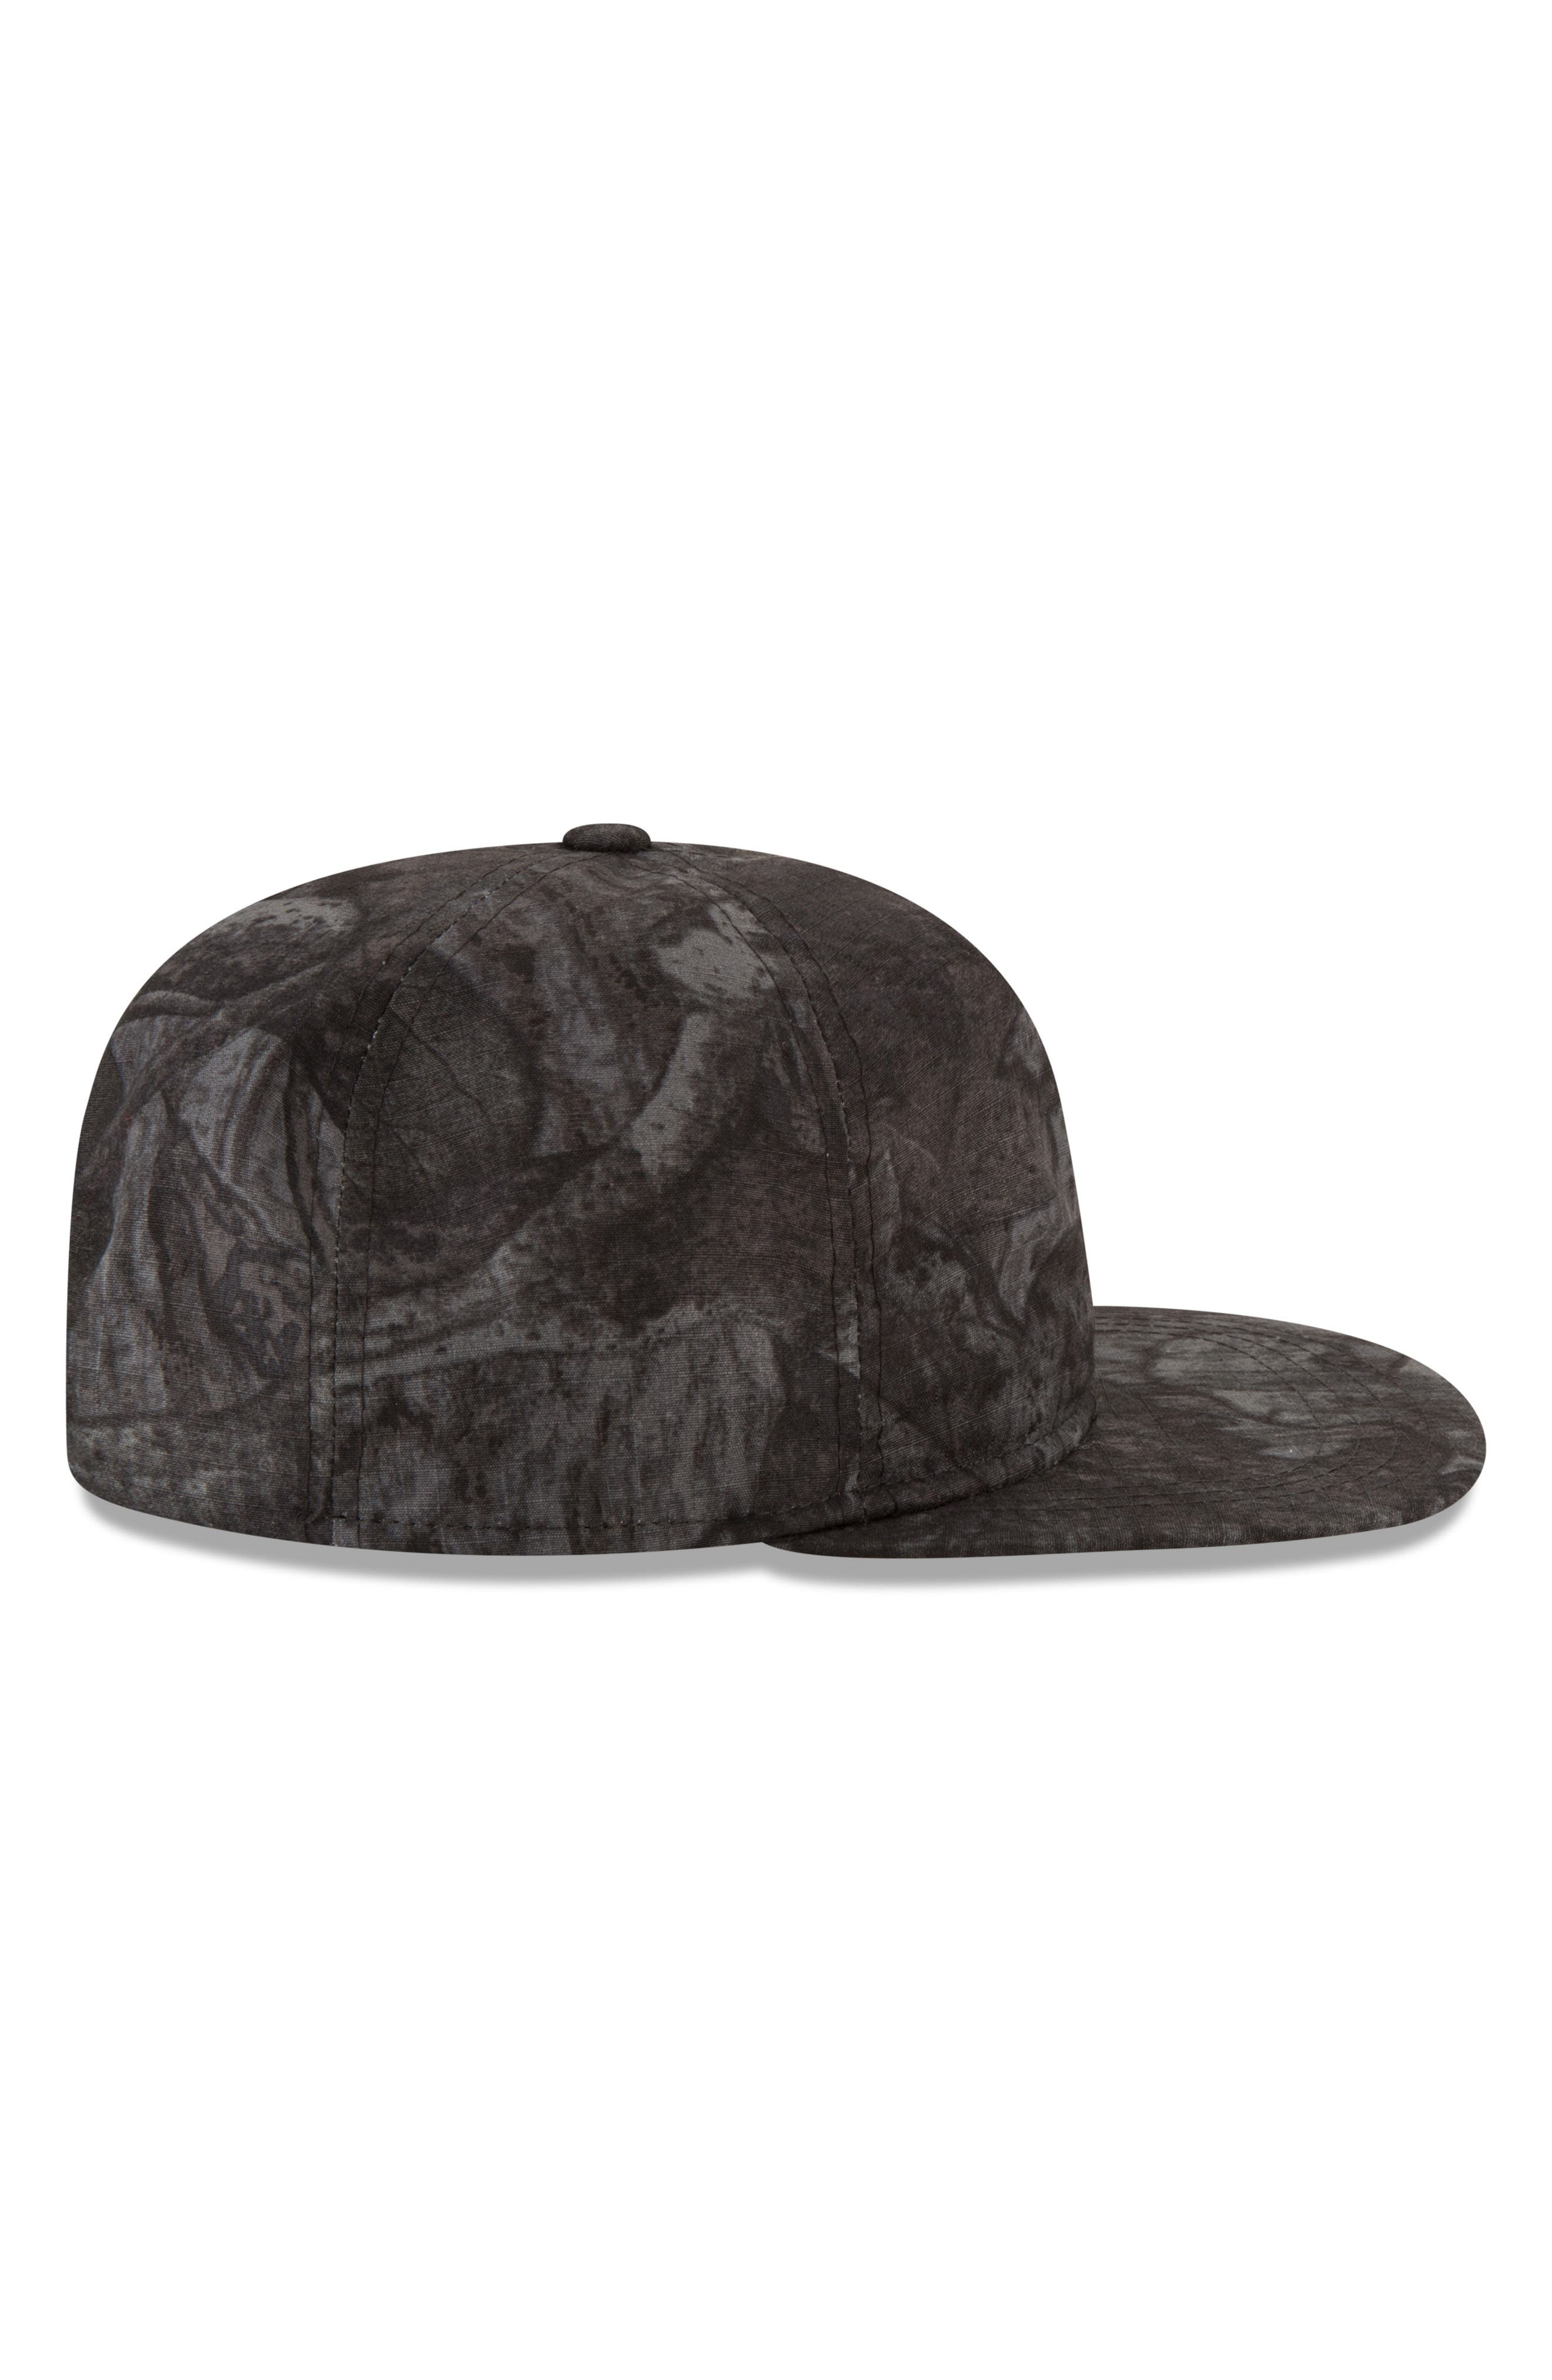 9Twenty Tonal Camo Flat Brim Hat,                             Alternate thumbnail 3, color,                             BLACK